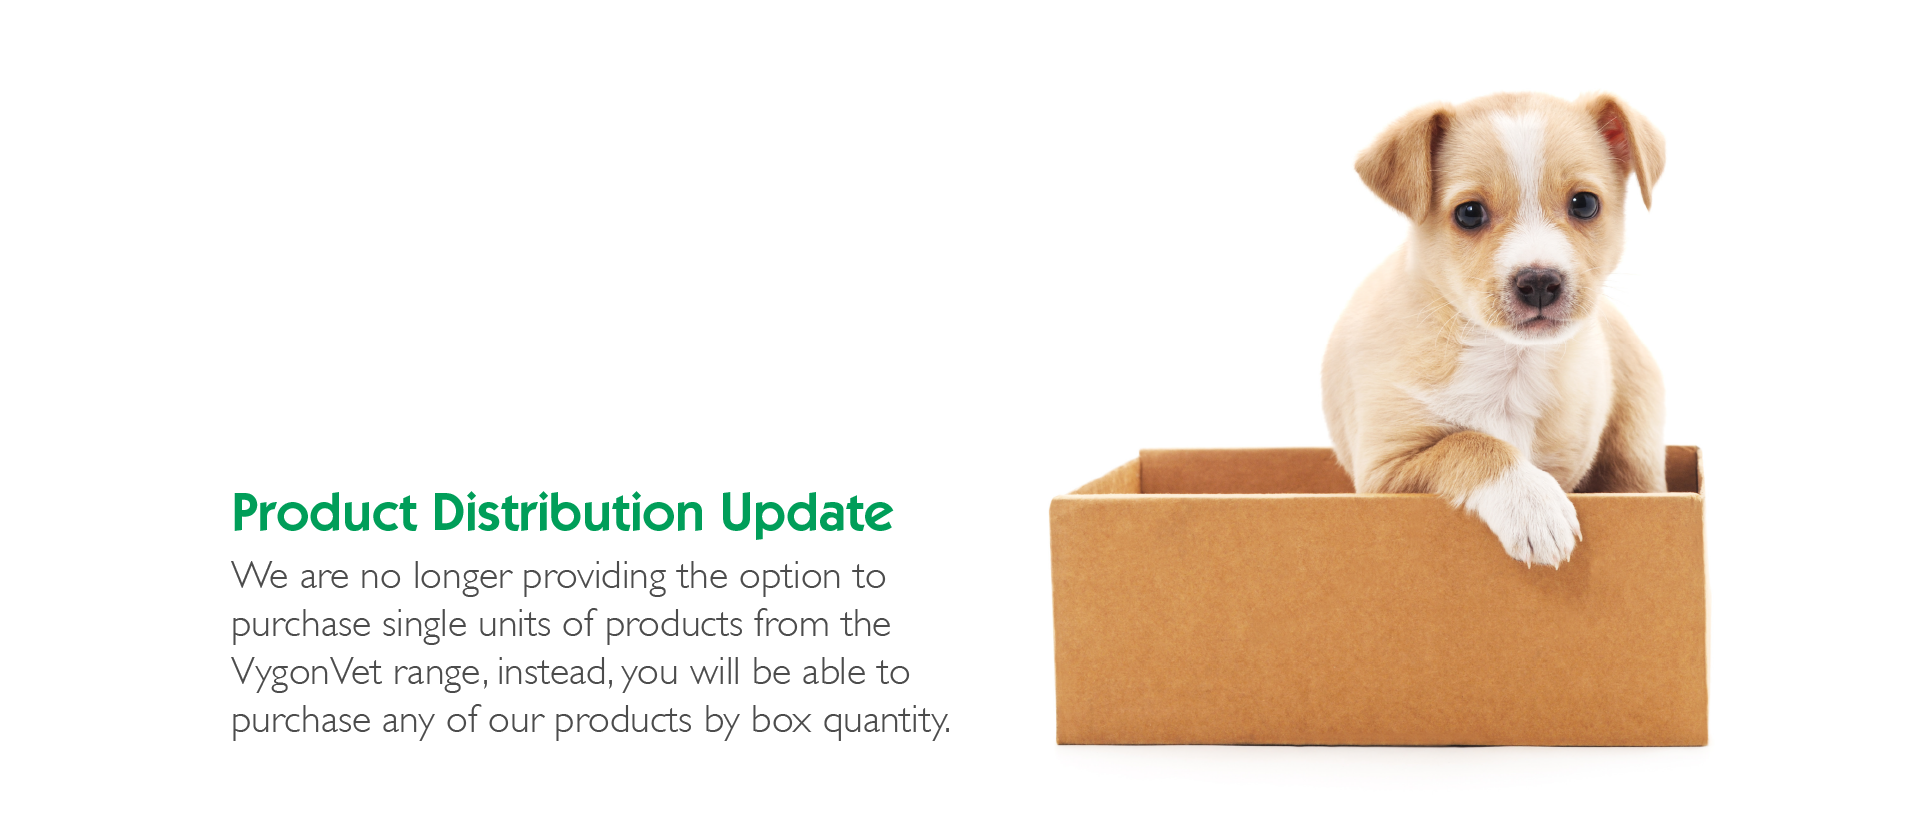 Product Distribution Update